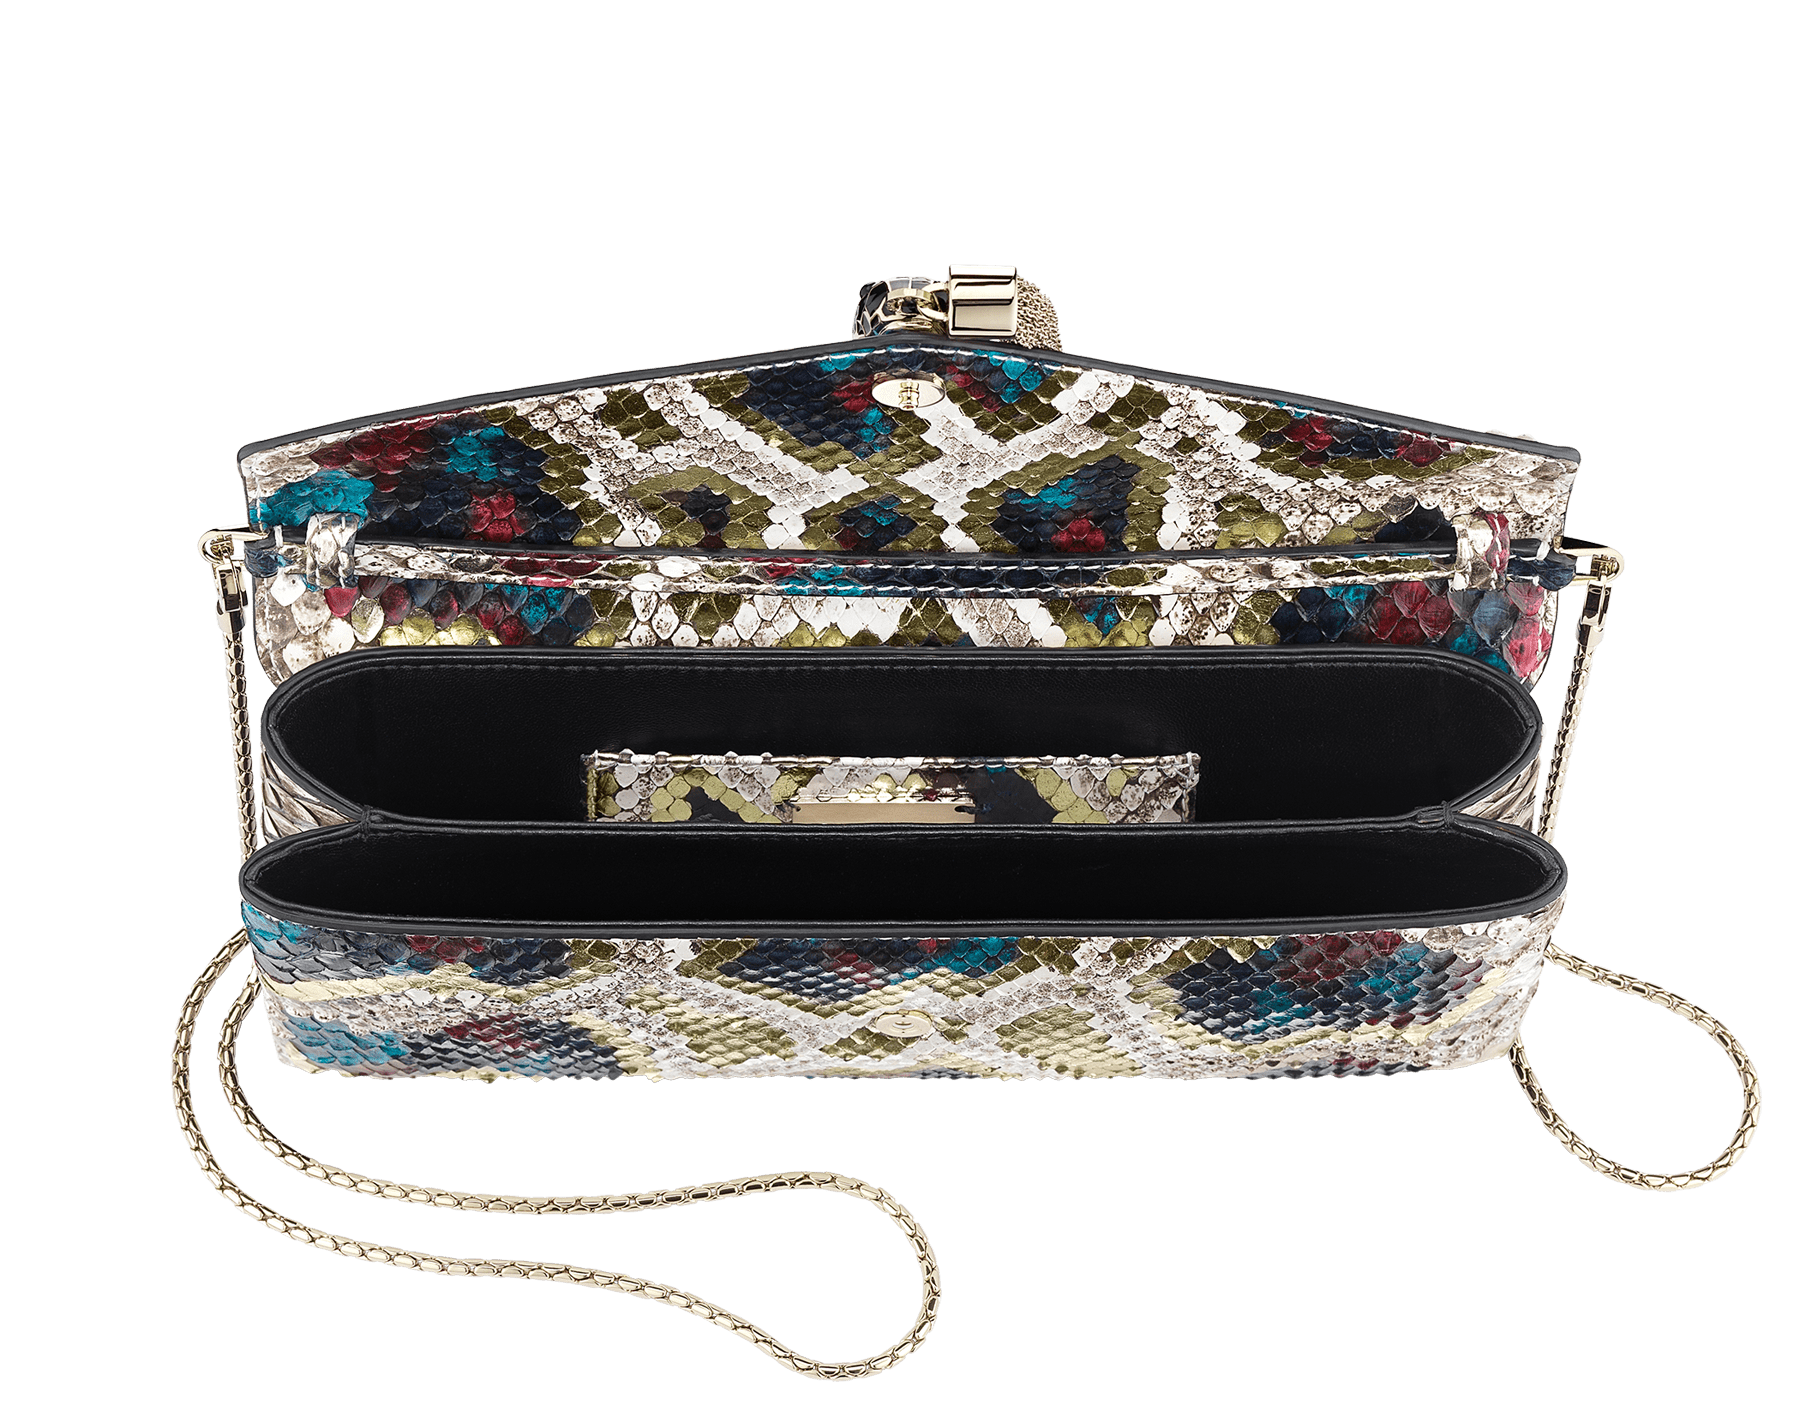 """""""Serpenti"""" evening clutch bag in white agate Lunar python skin. Iconic snakehead stud closure with tassel in light gold plated brass enriched with black and roman garnet enamel and black onyx eyes. 288485 image 4"""